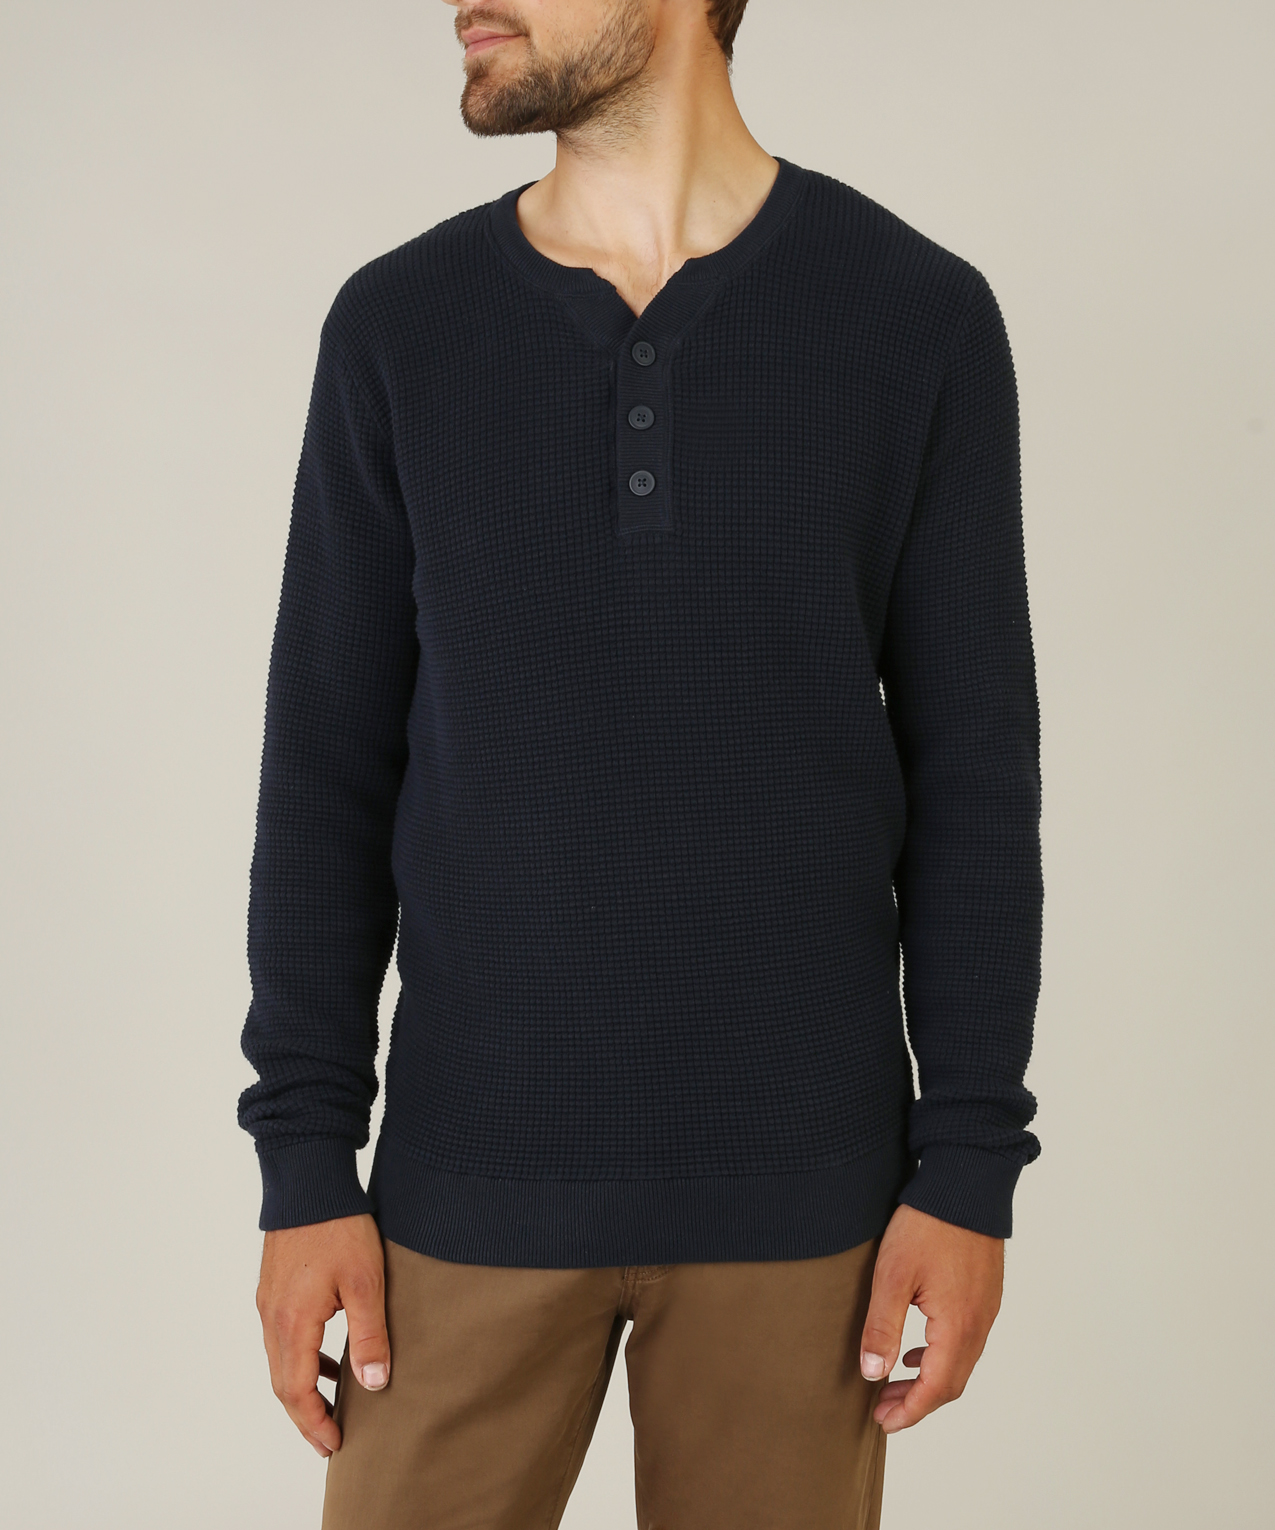 Conway clothing store online